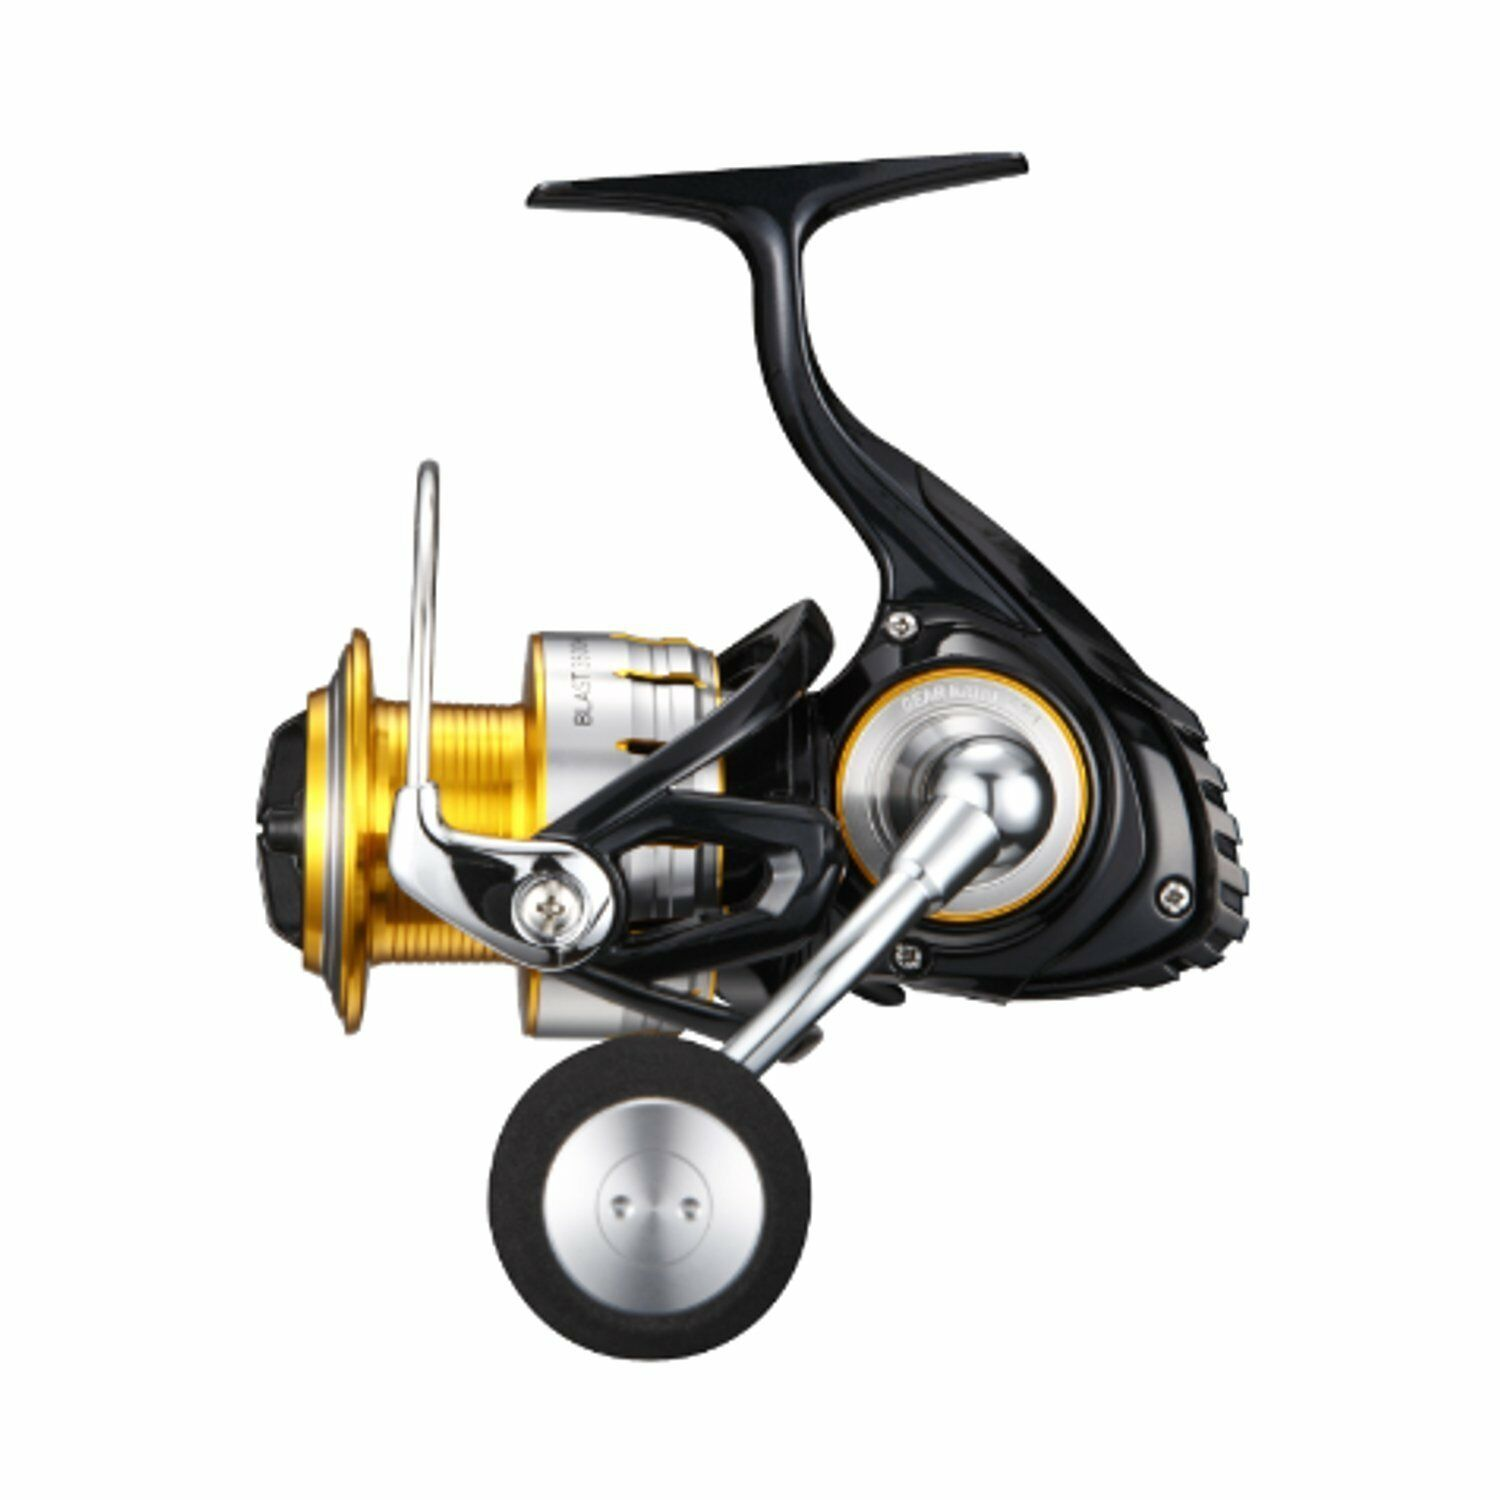 Daiwa 16 BLAST 4000 Spininng Reel Salt Water Fishing New